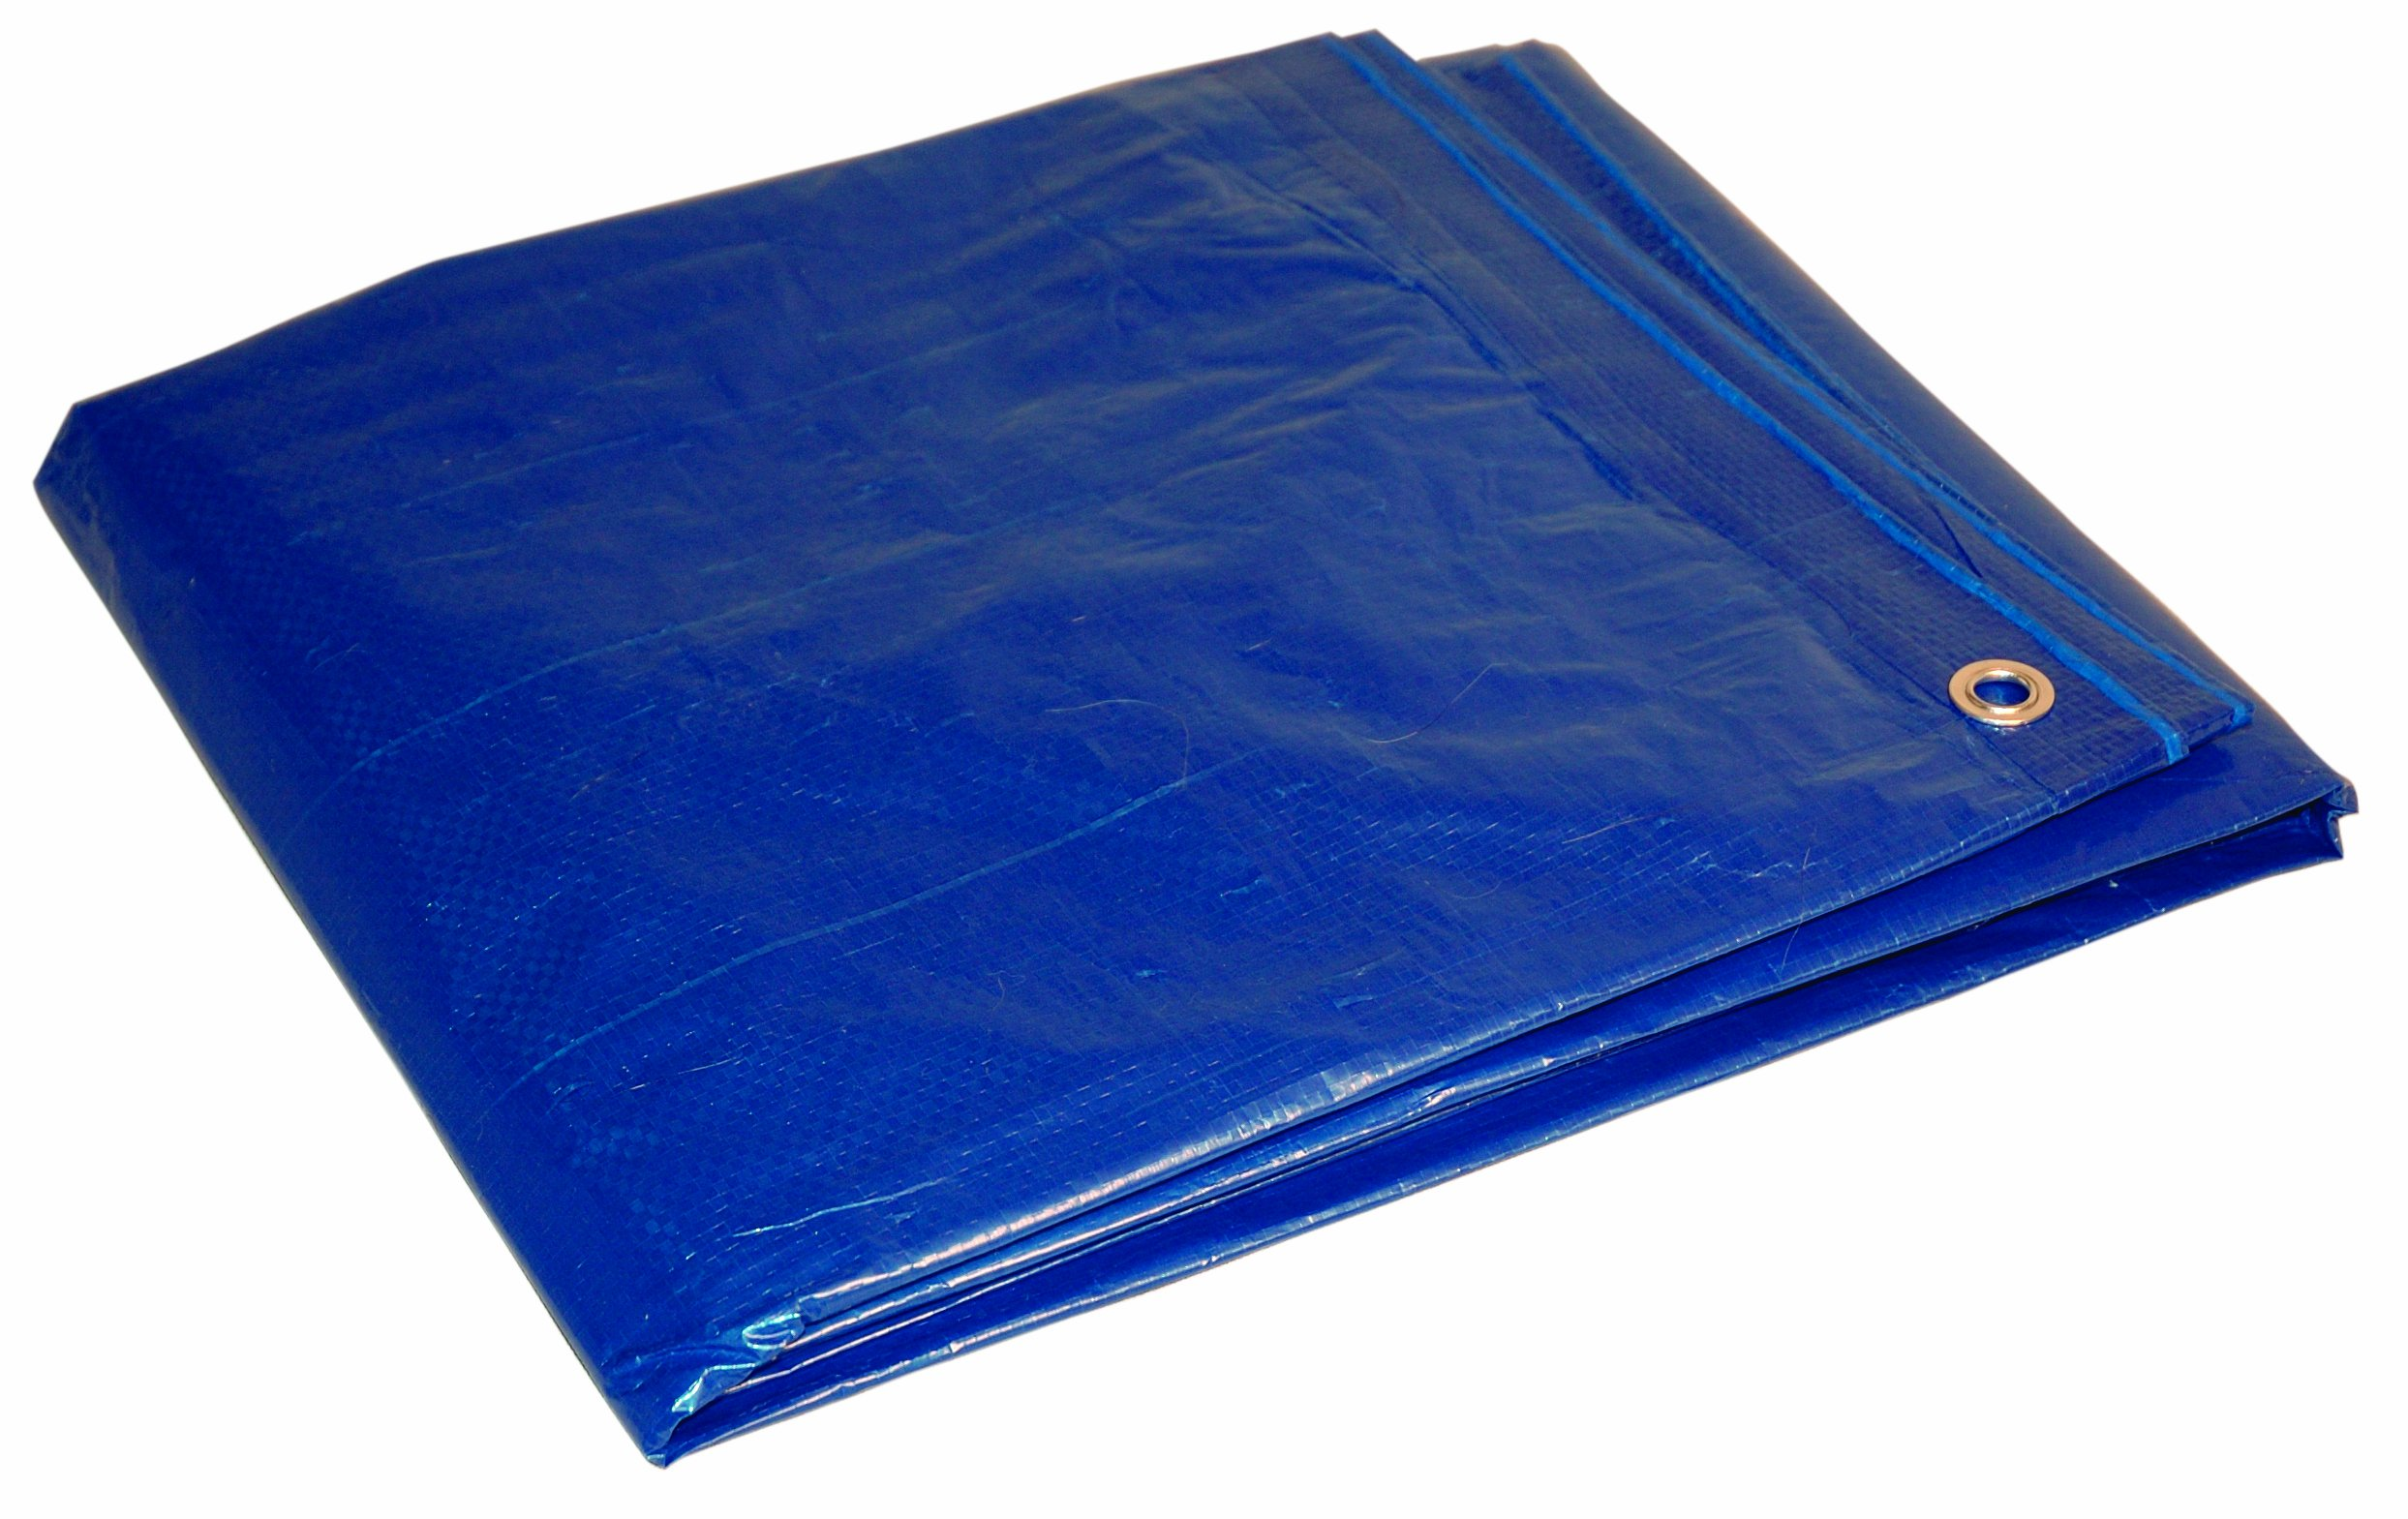 16' x 20' Blue Cut Size 5-mil Poly Tarp item #816204